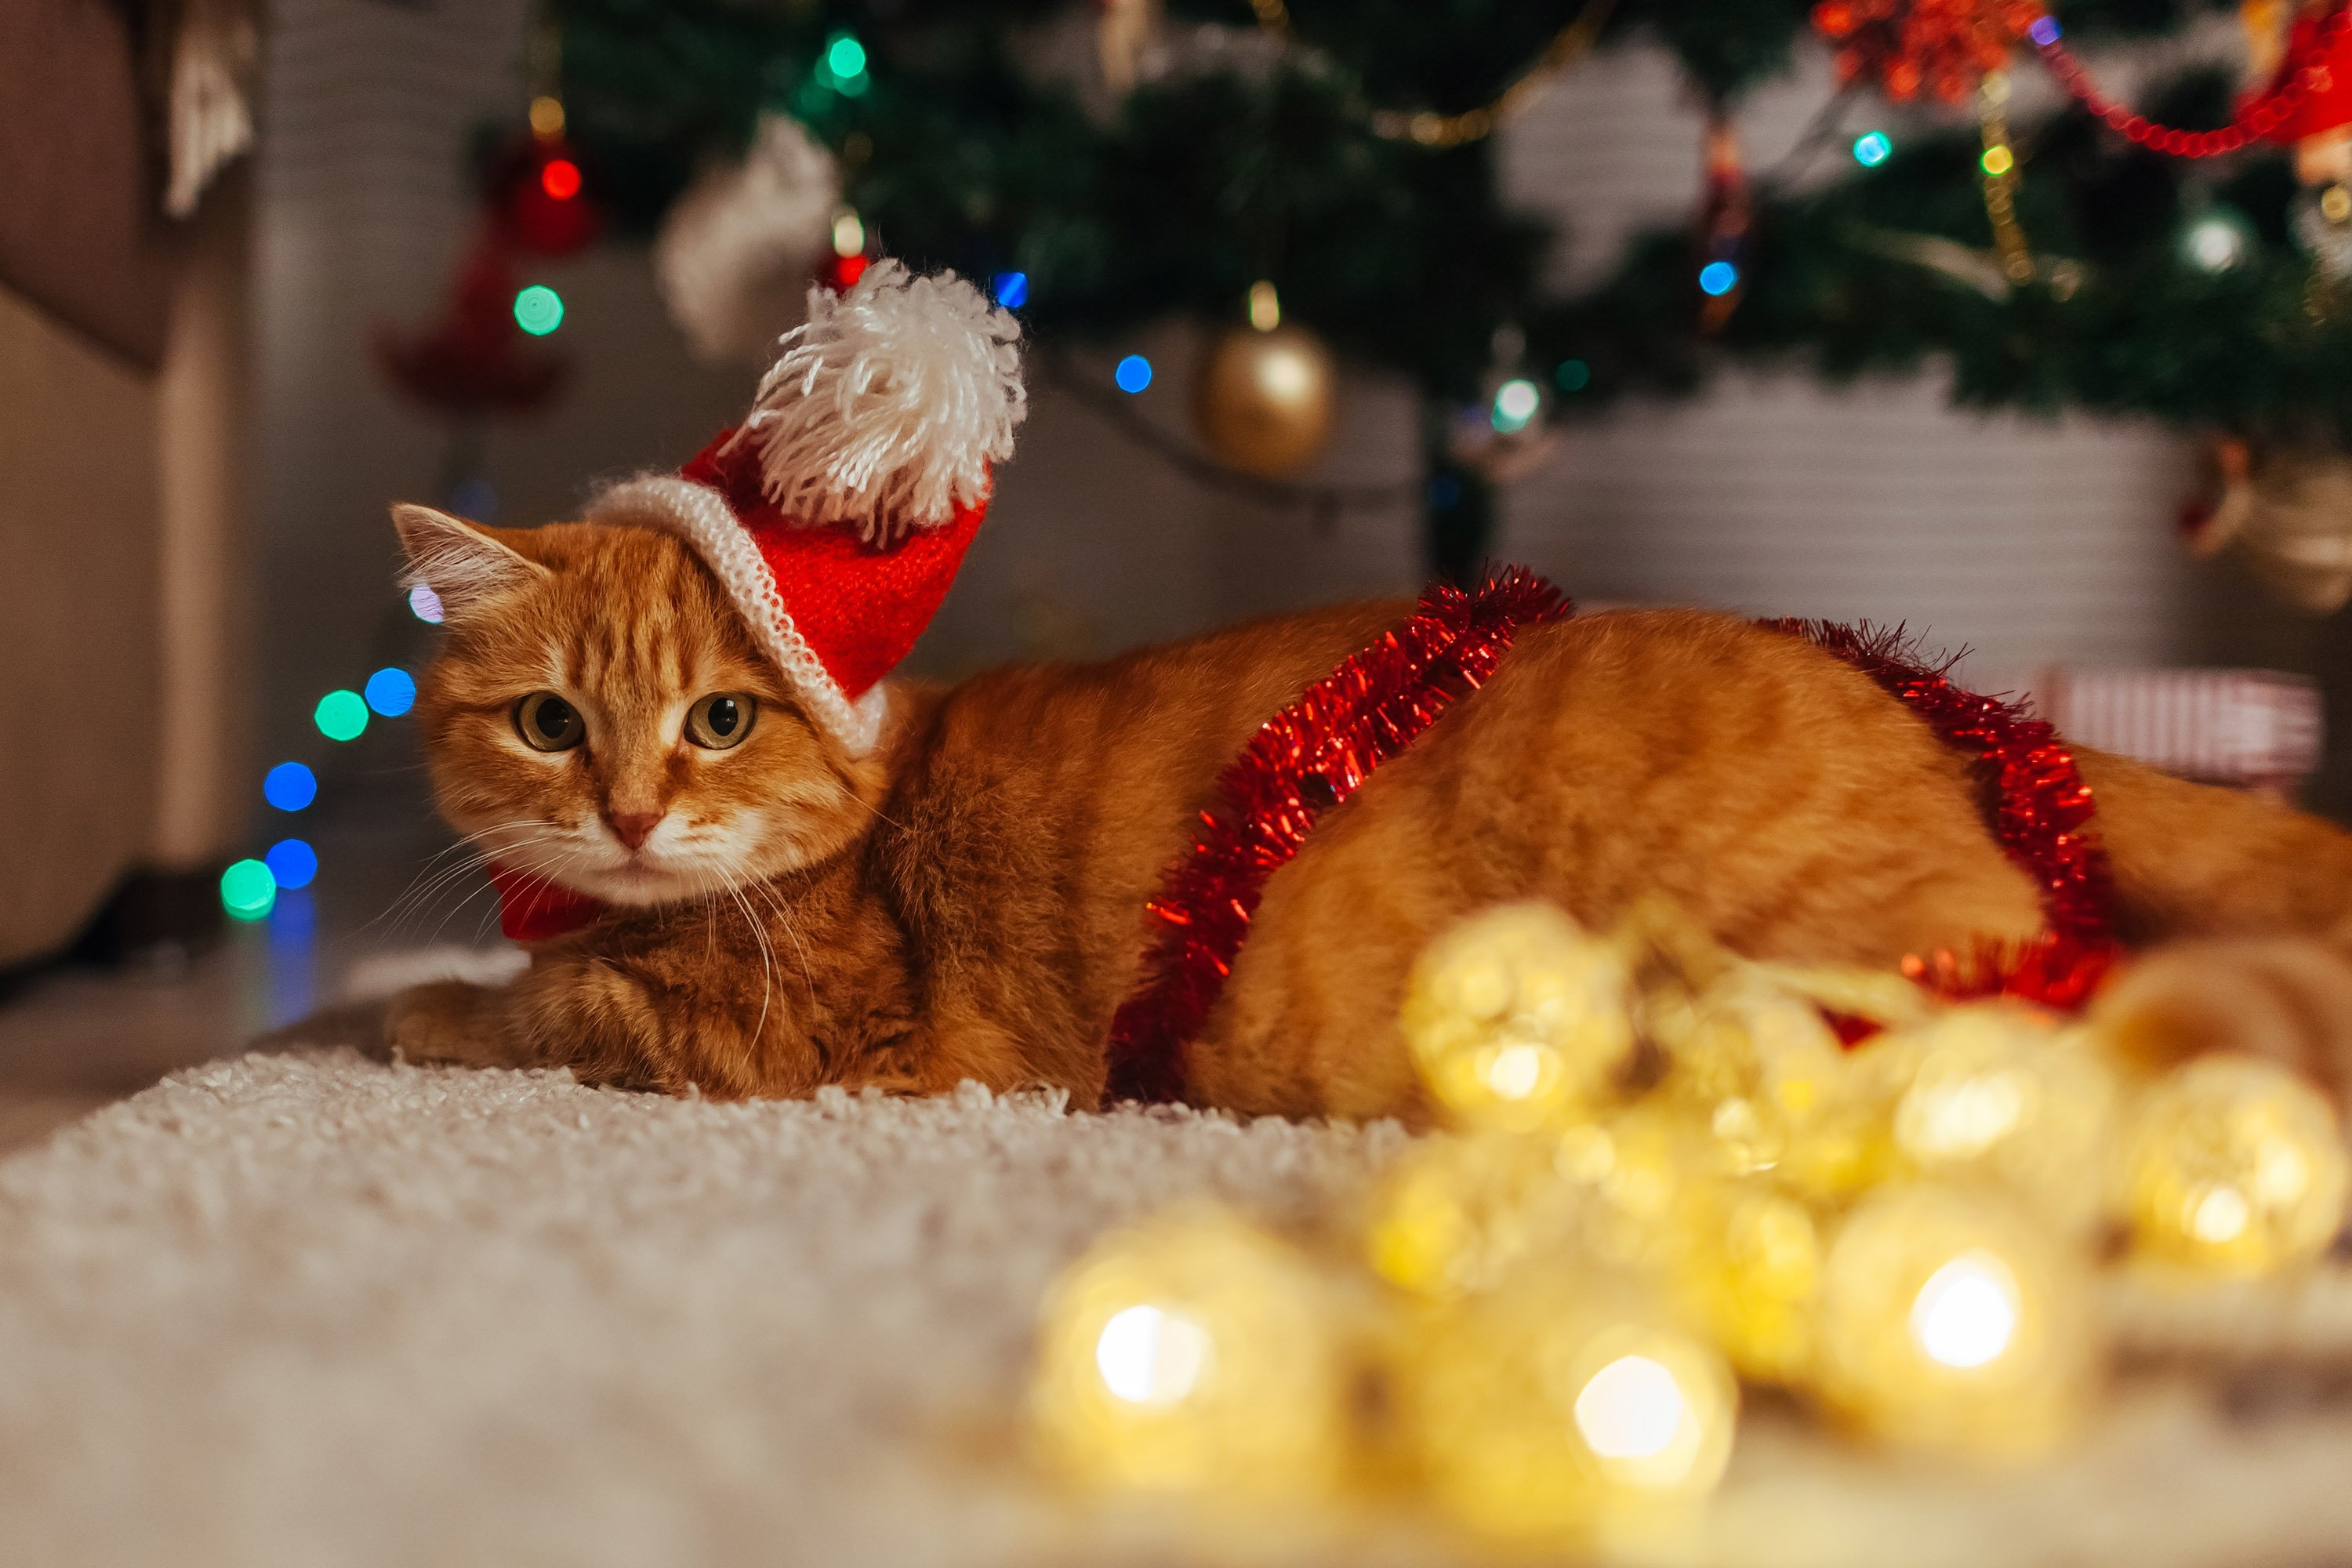 Wearing red on New Year's is said to bring love, luck and good fortune. (Shutterstock Photo)